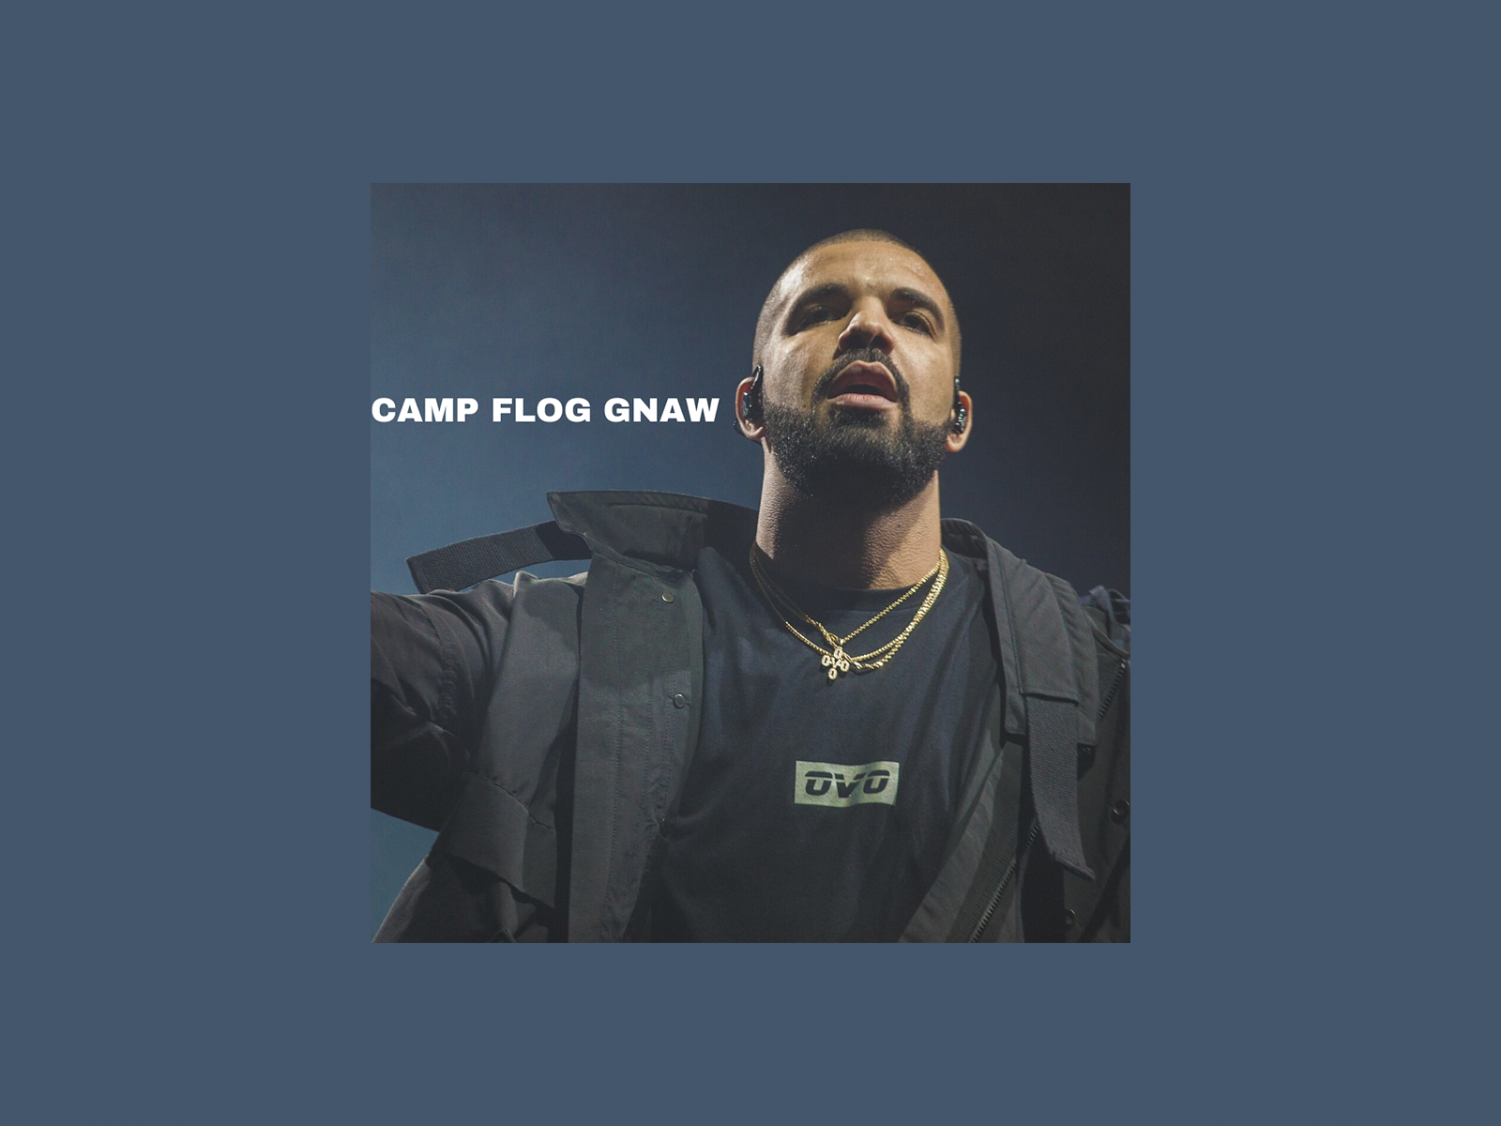 Thomas writes about the performances and highlights at Camp Flog Gnaw